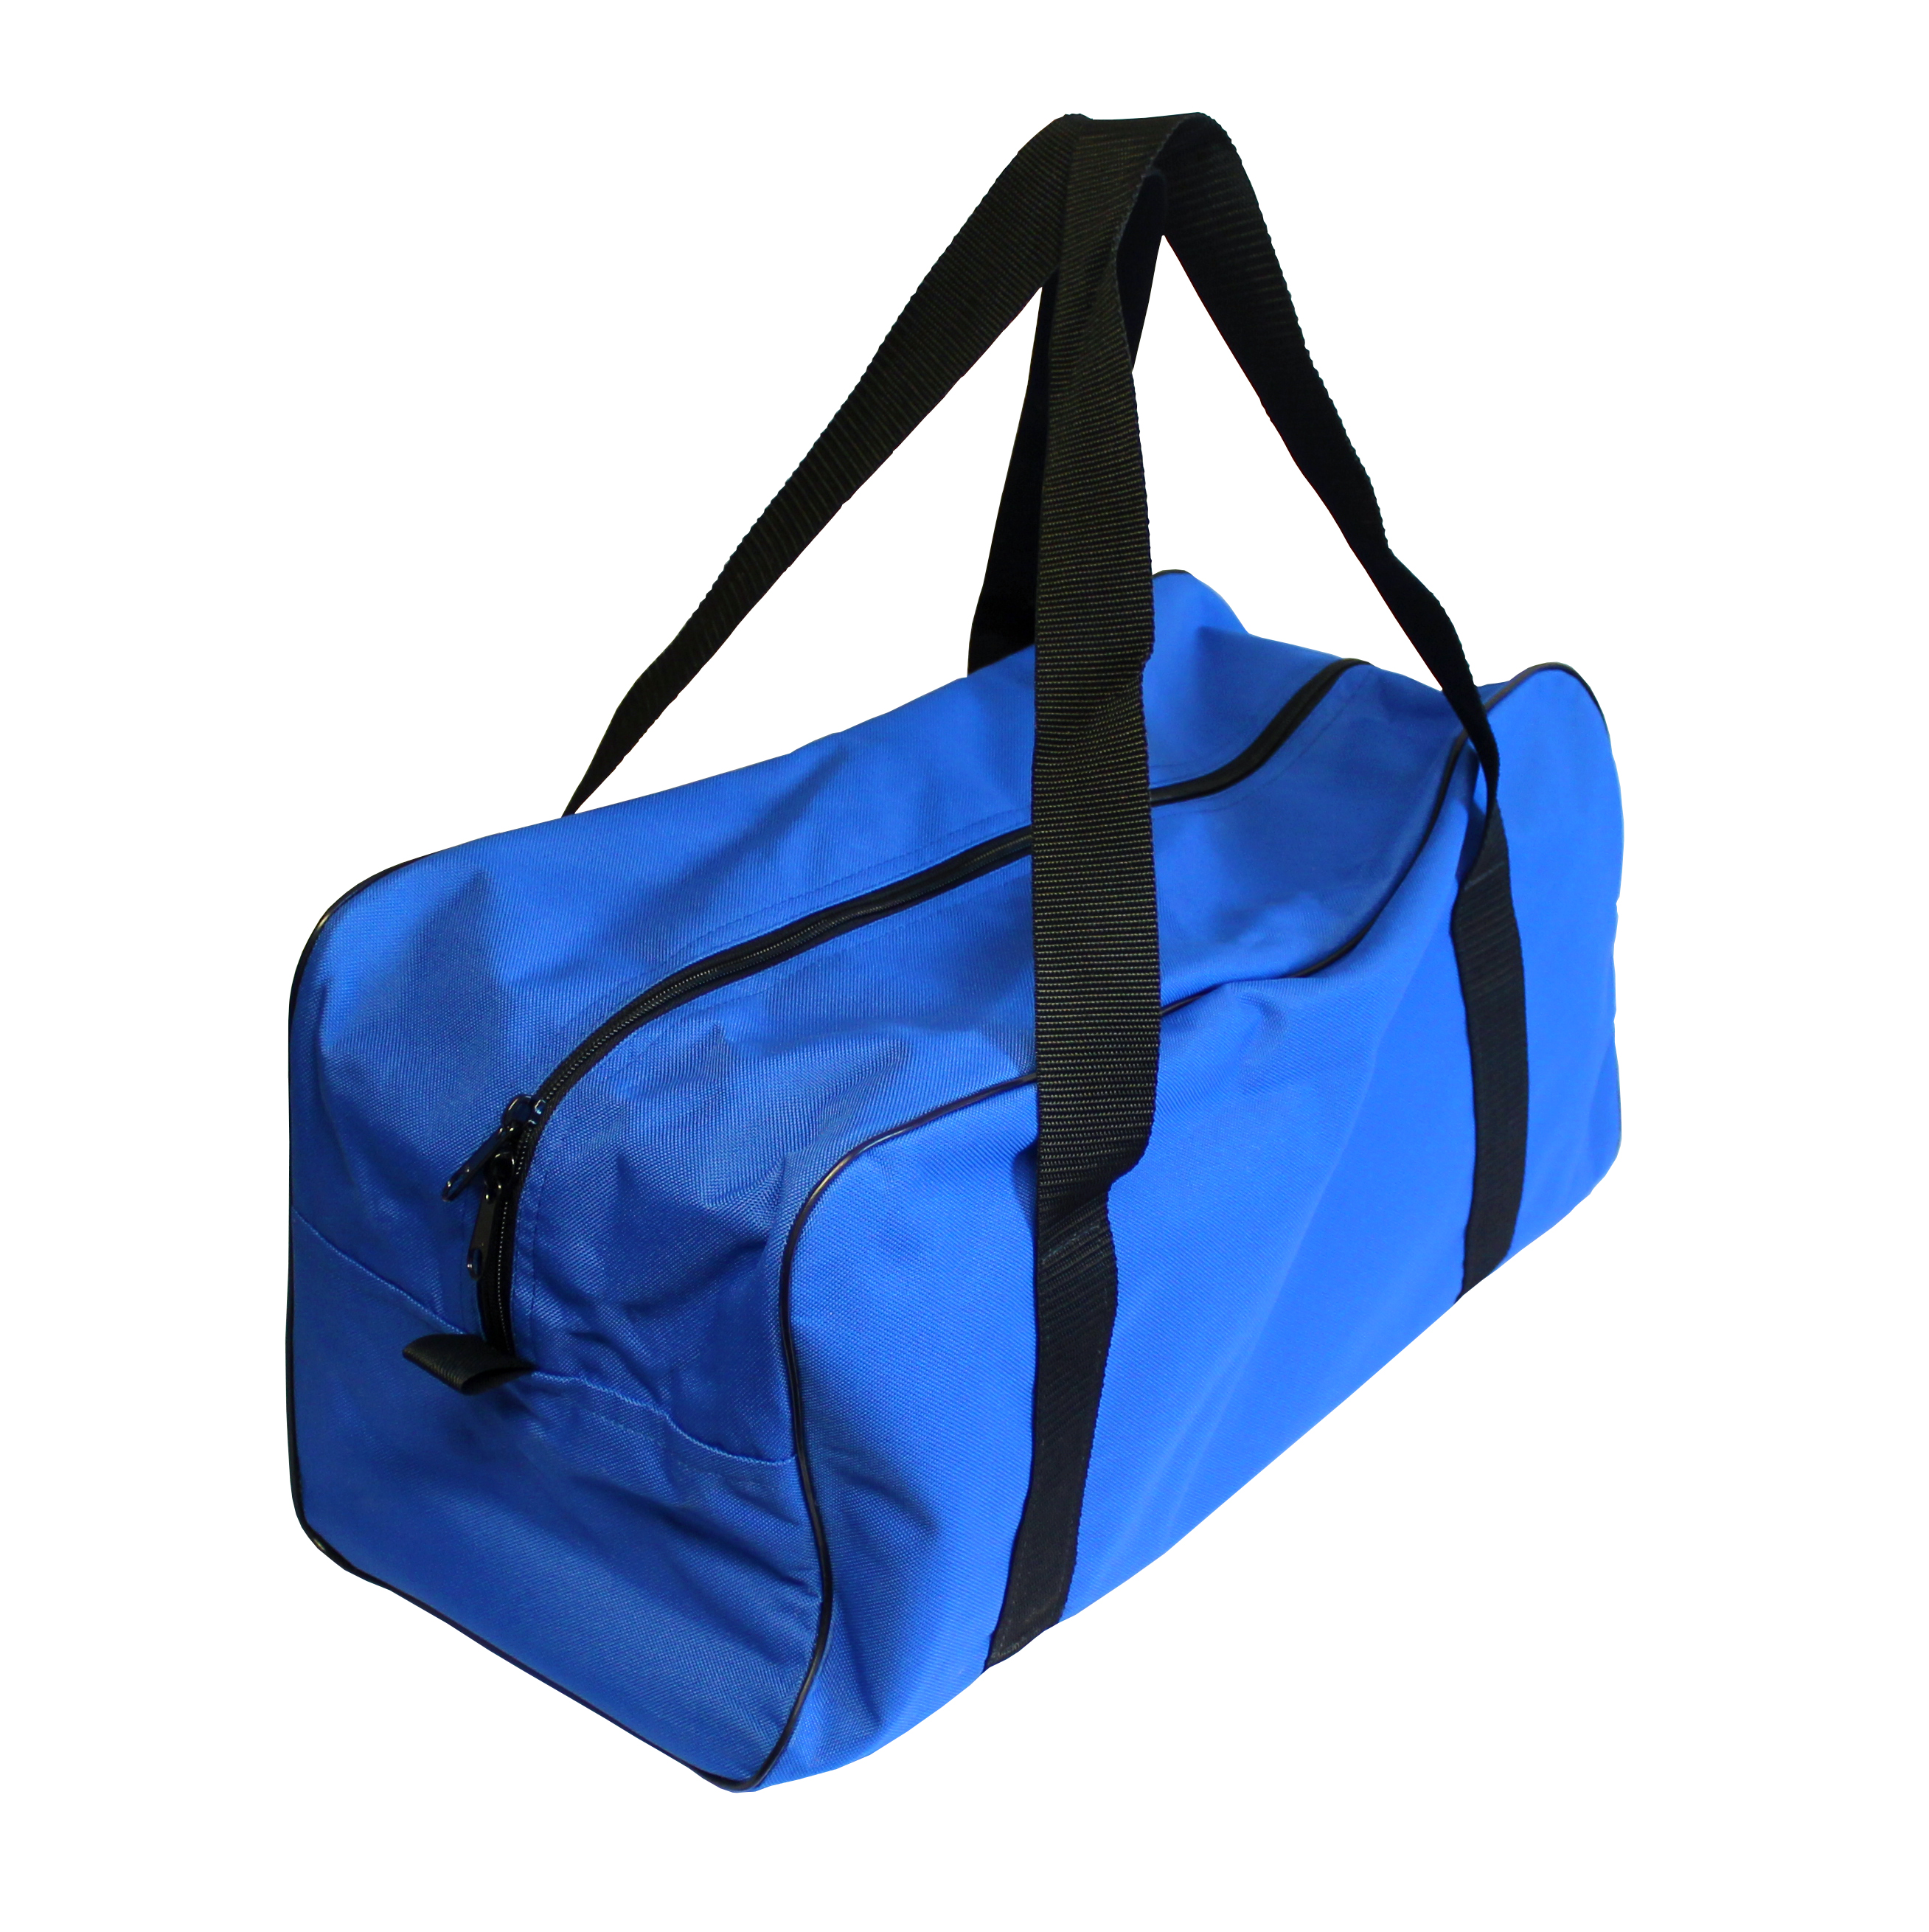 Fall Arrester Bag